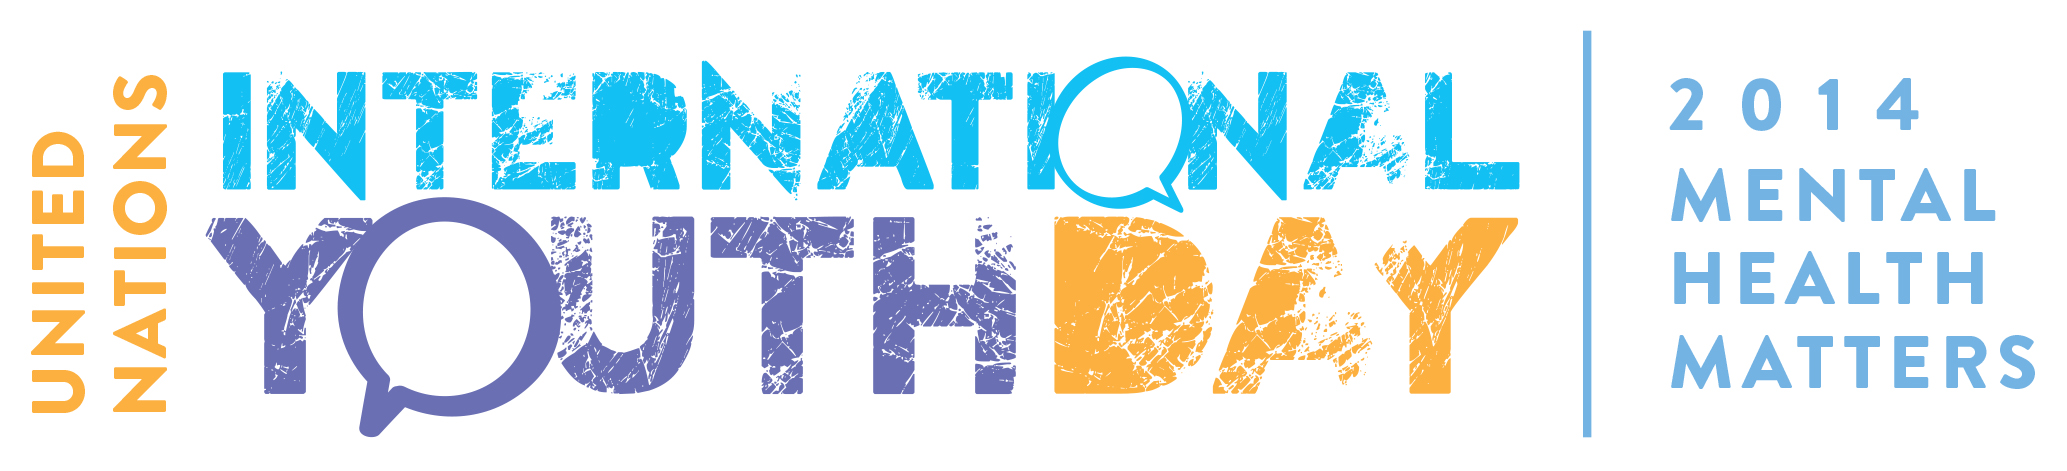 International Youth Day 2014: Mental Health Matters.